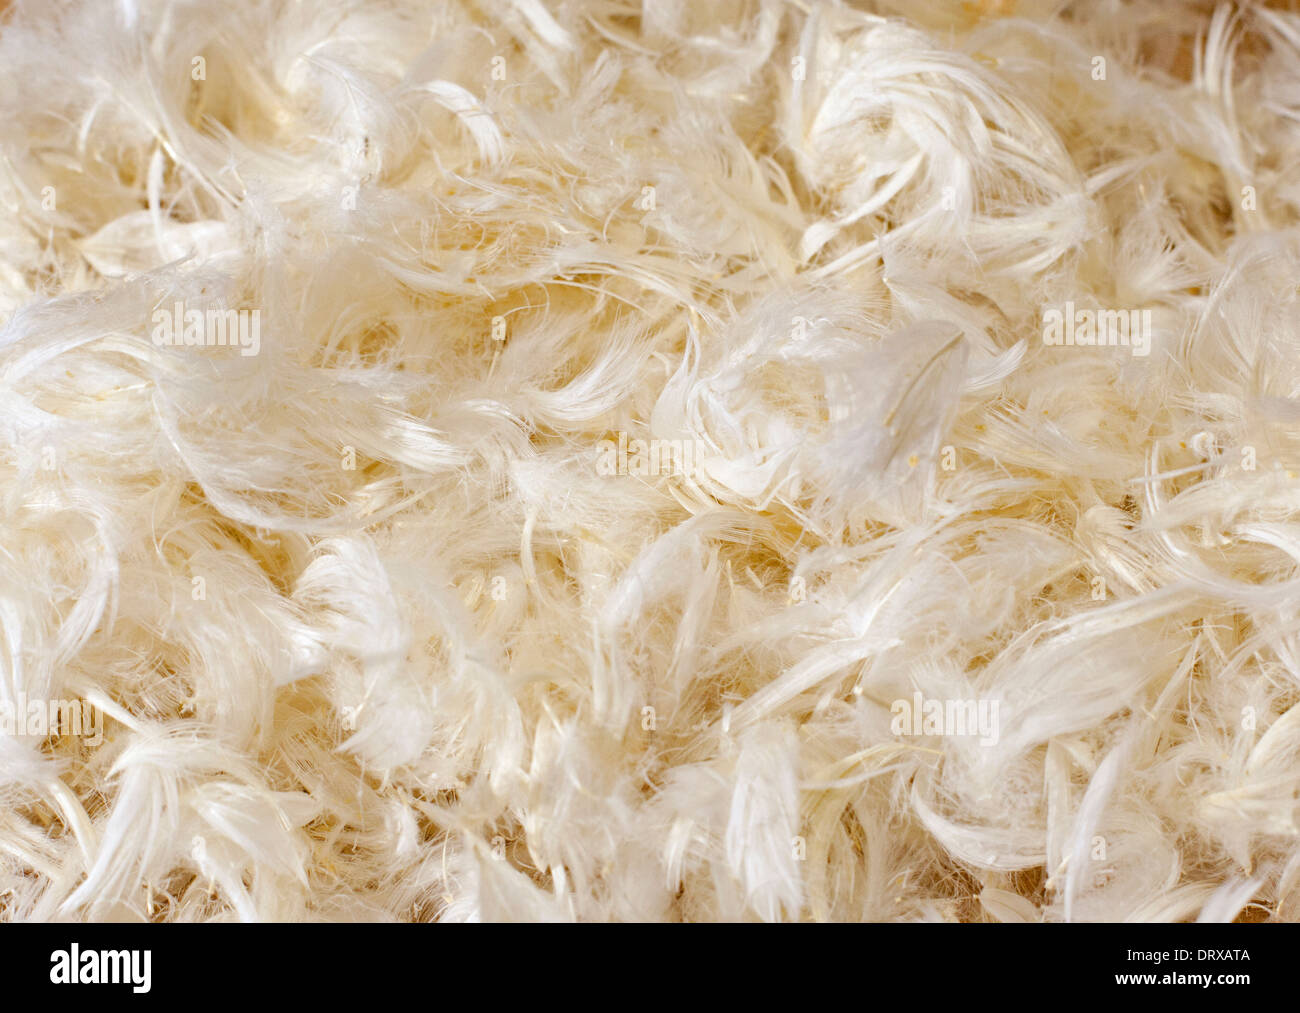 Still life of a pile of down feathers - Stock Image